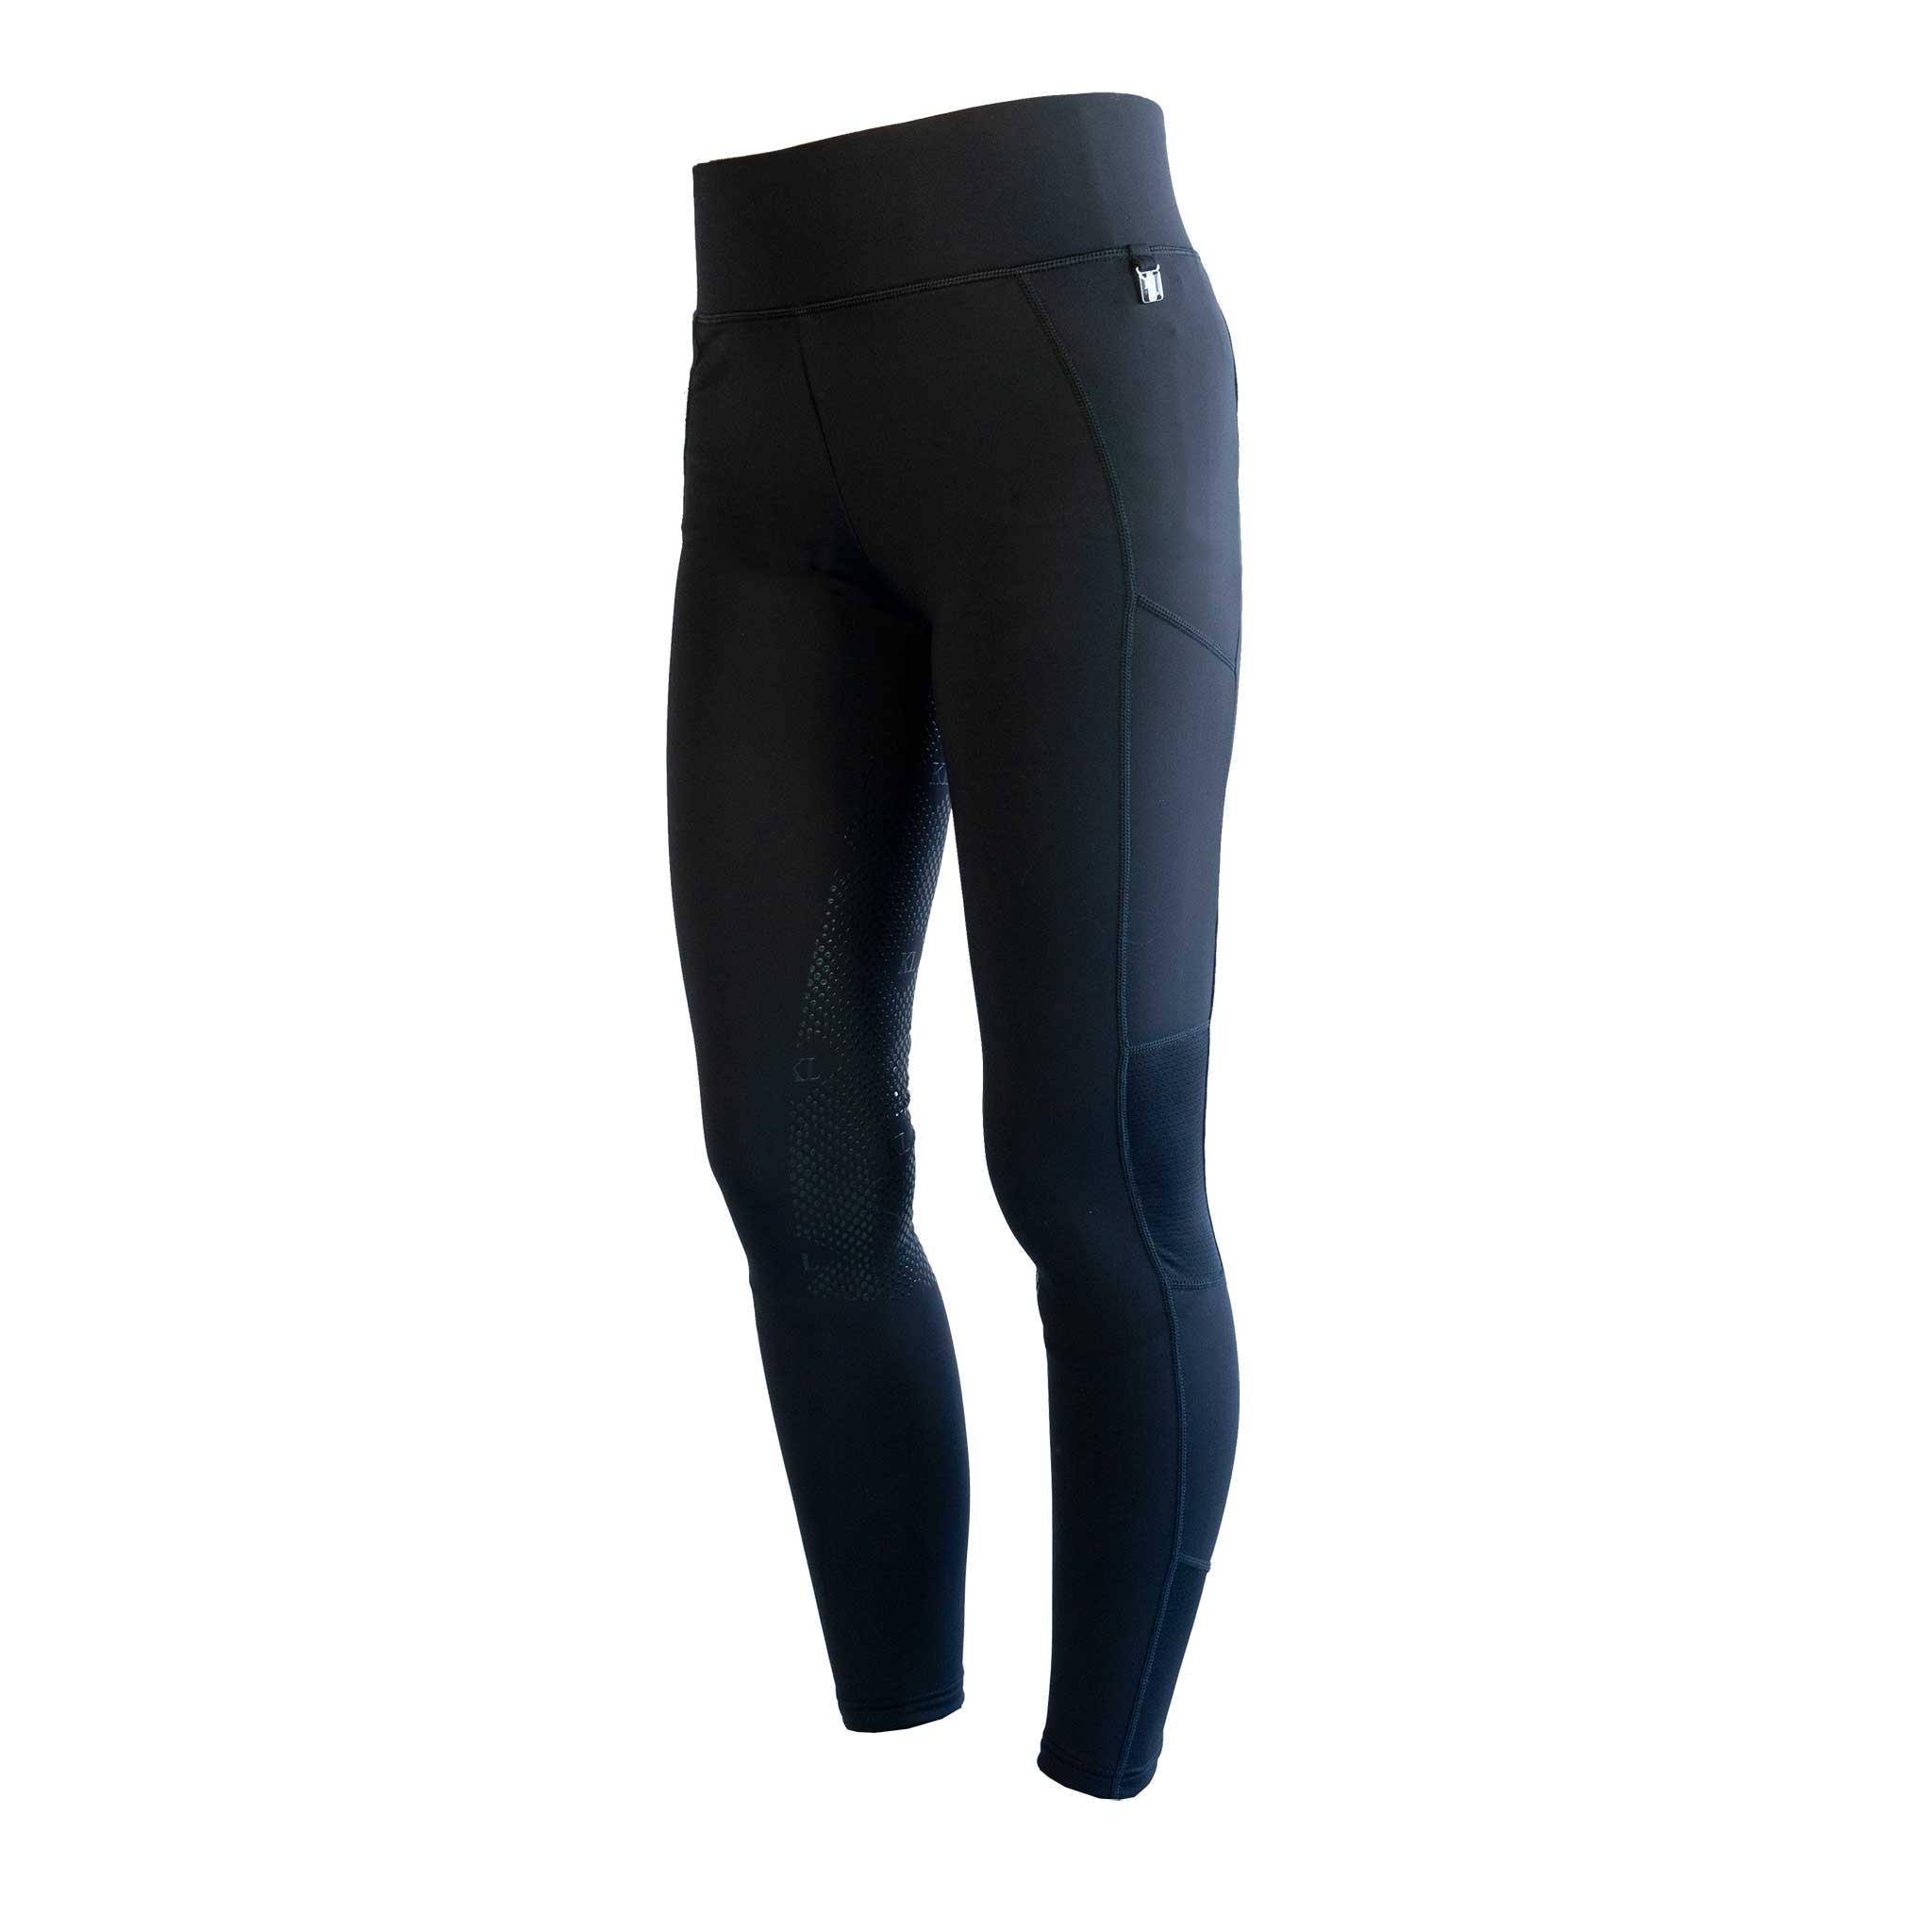 Kingsland Kemmie F-Tec2 tights, full grip til barn